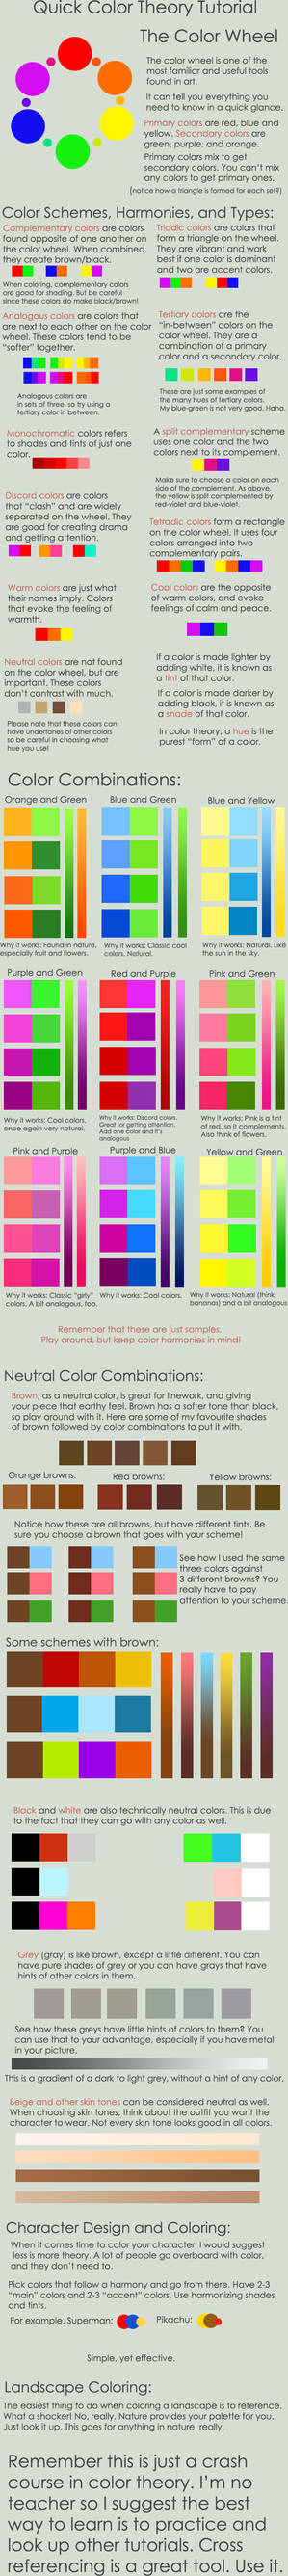 Color Theory Crash Course